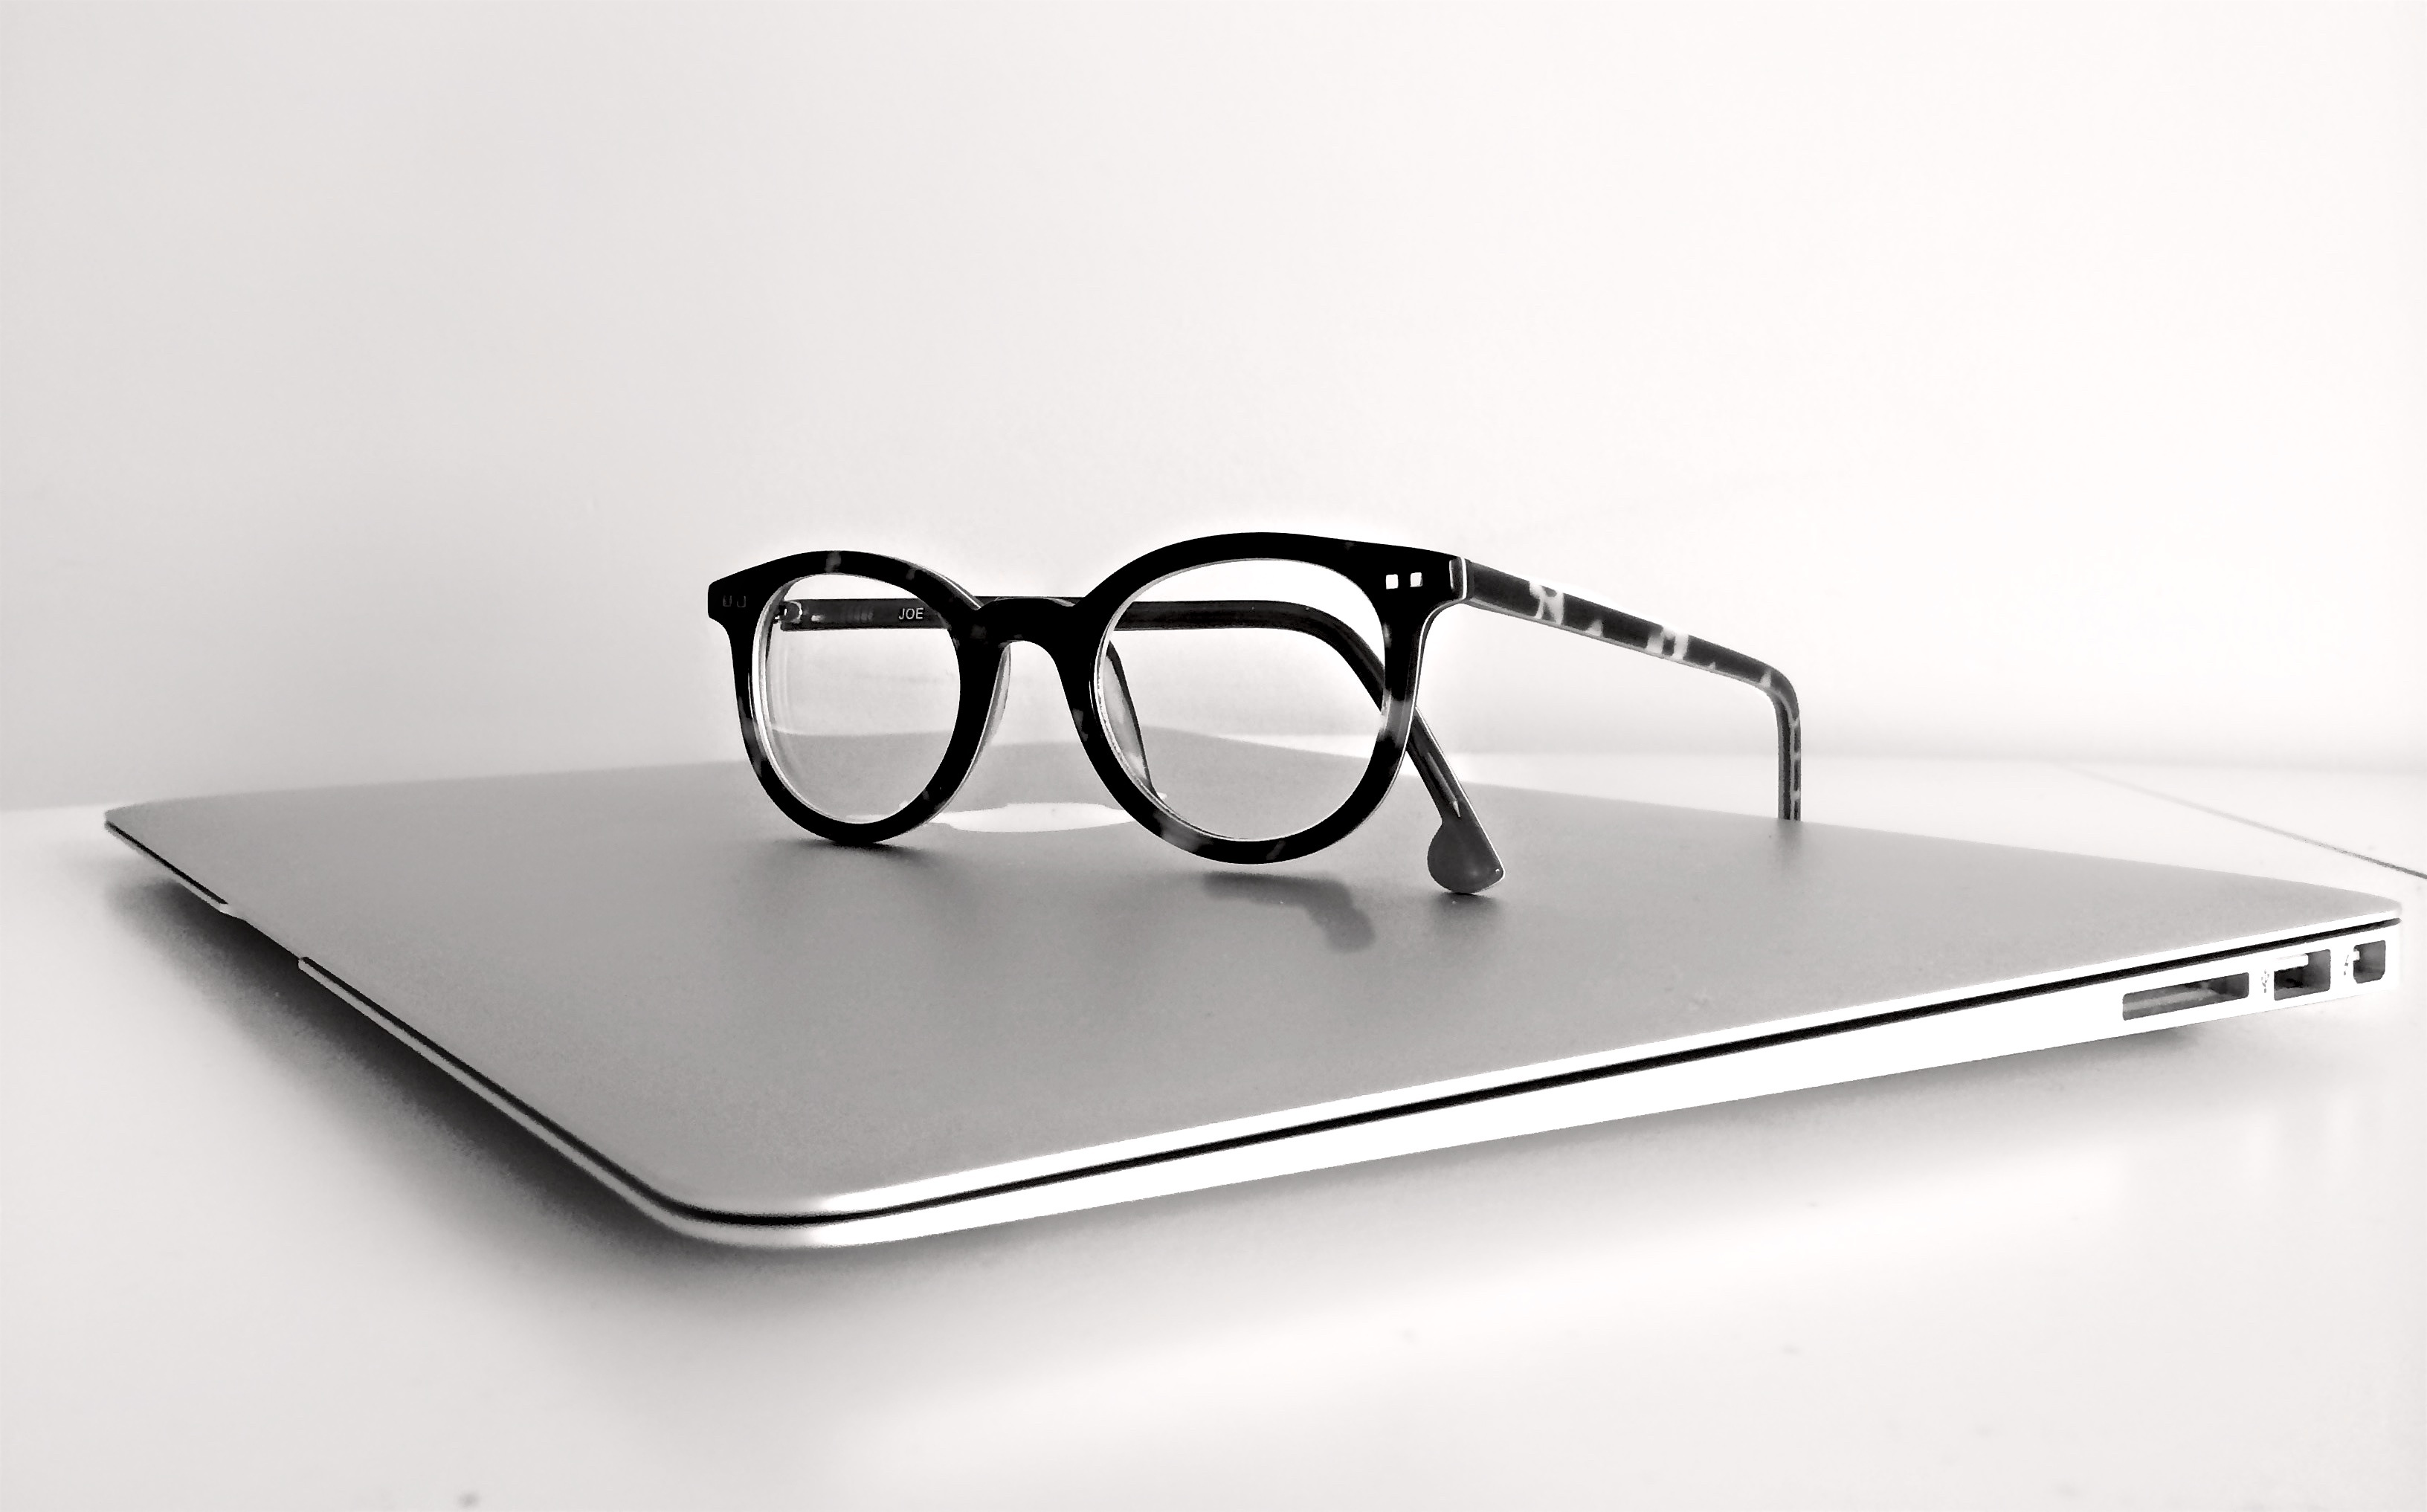 mac laptop and glasses